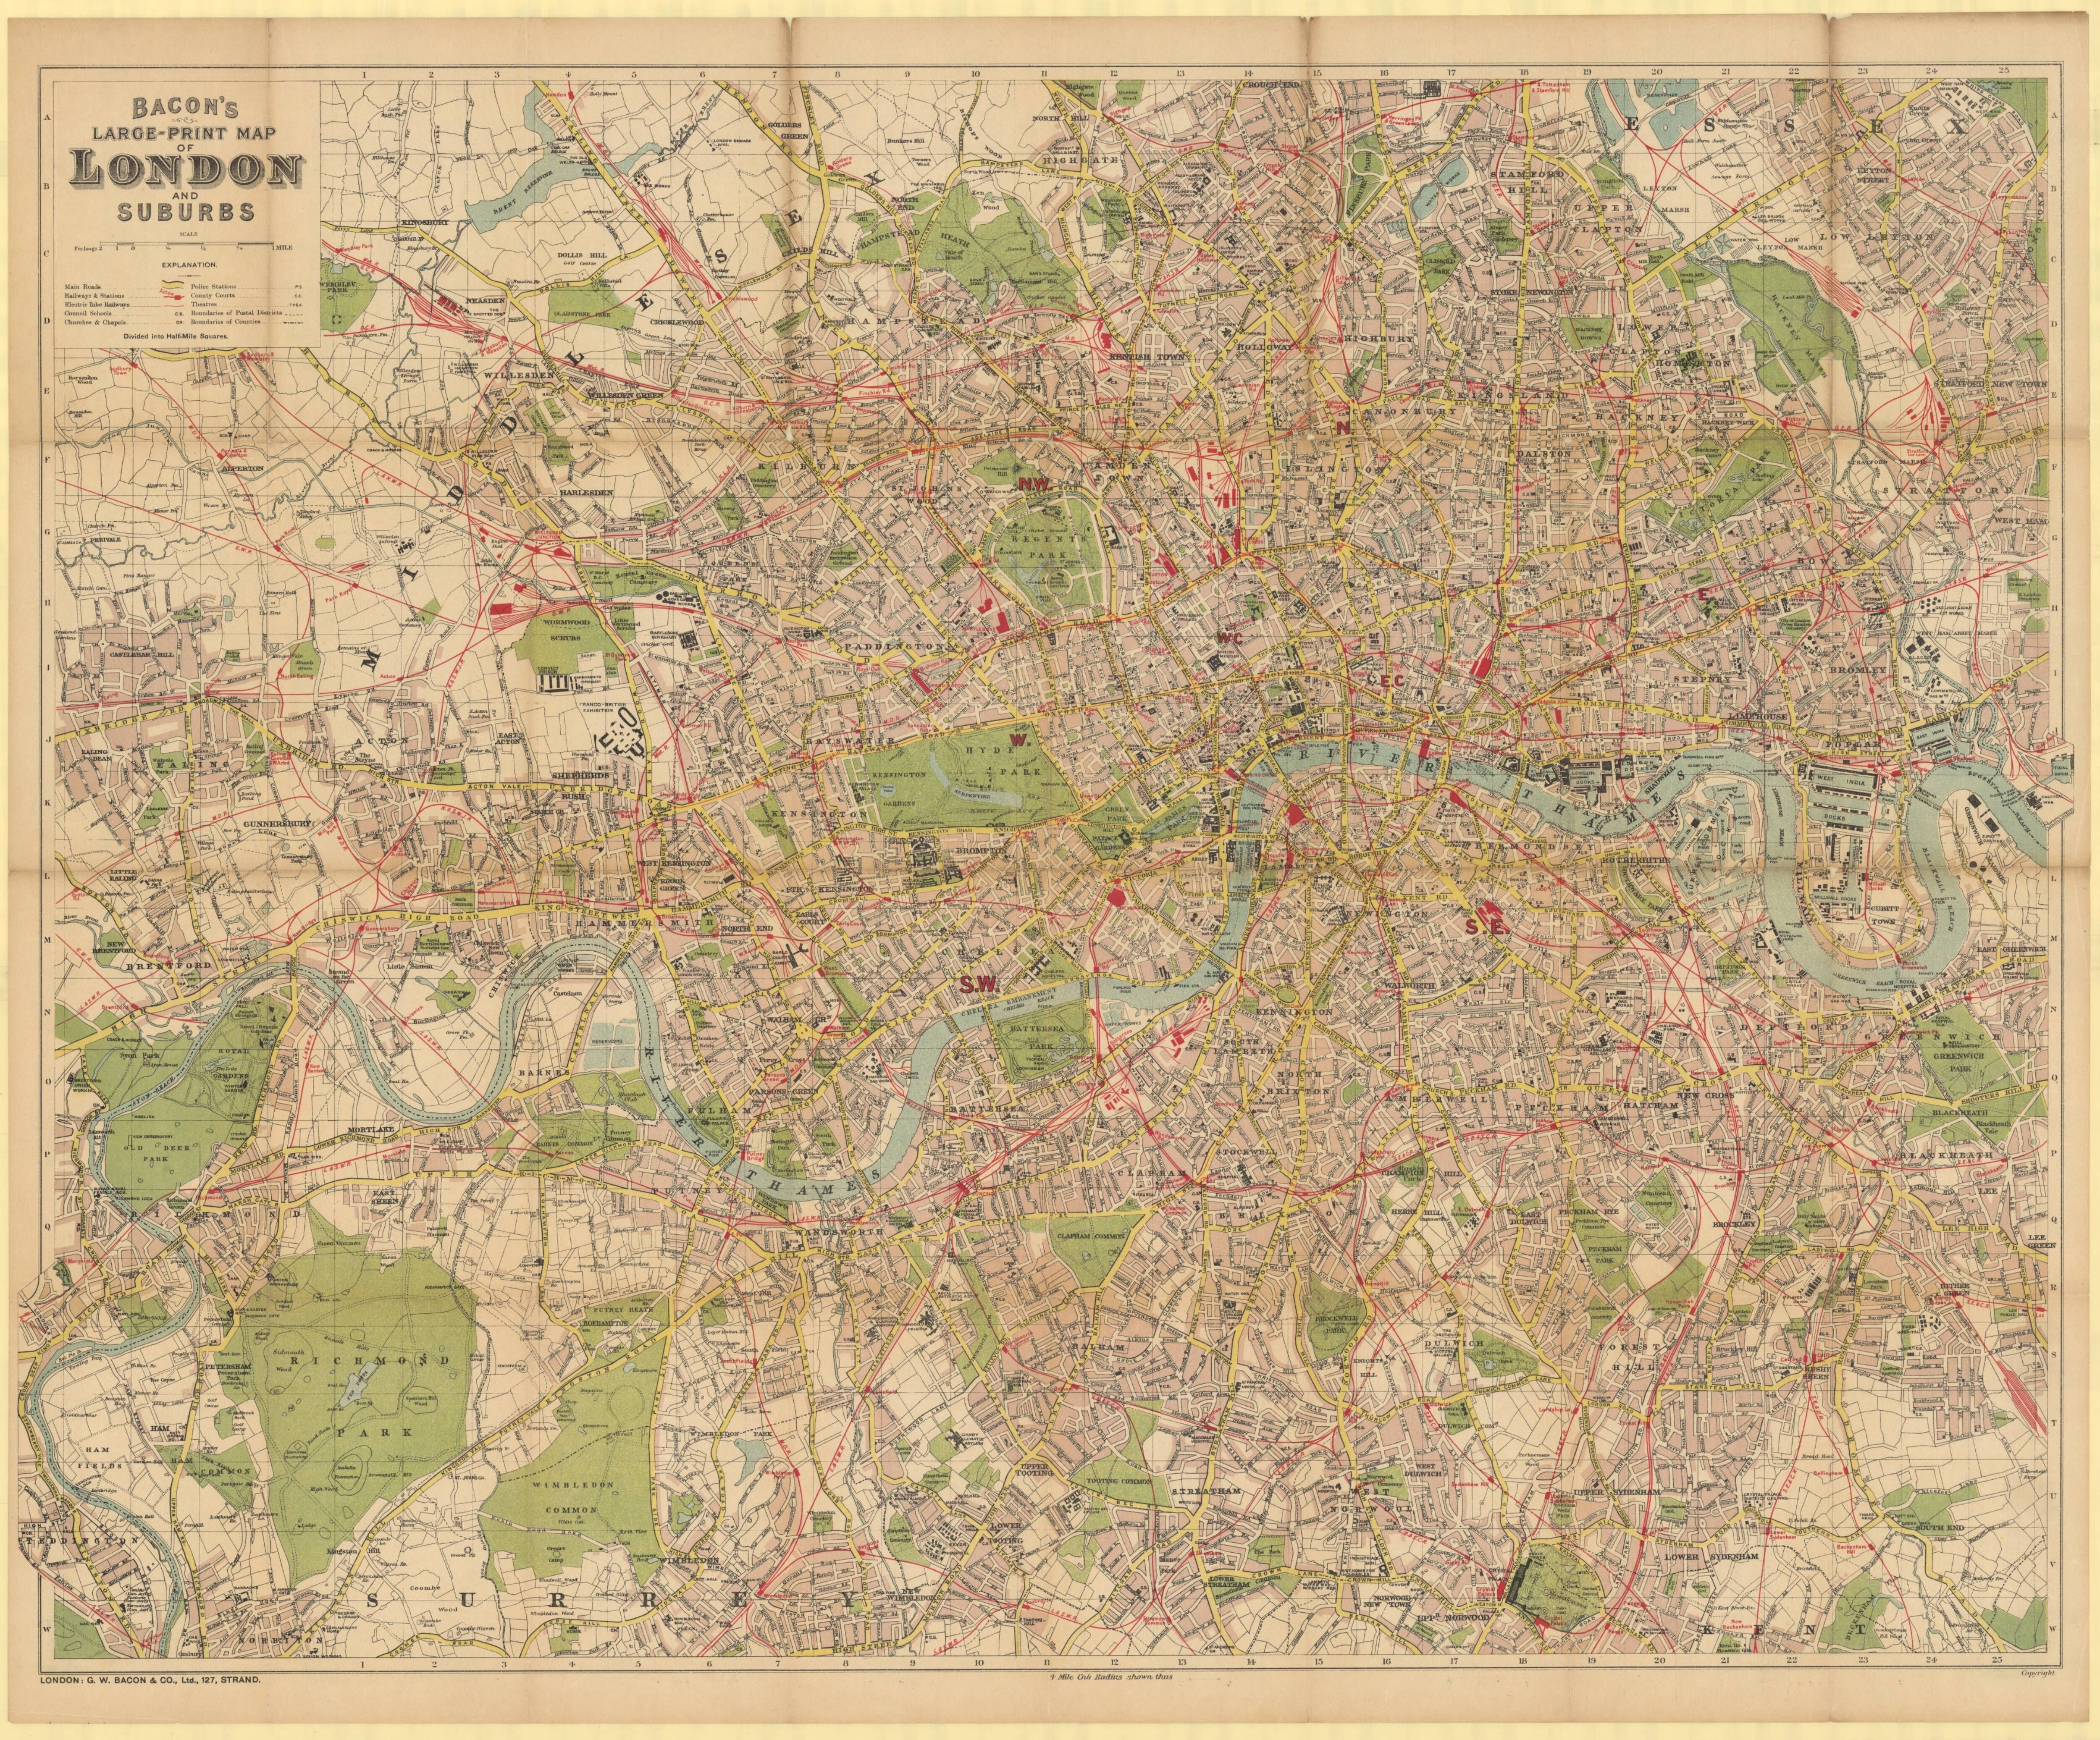 Bacons map of greater London 1900s map london uk Maps